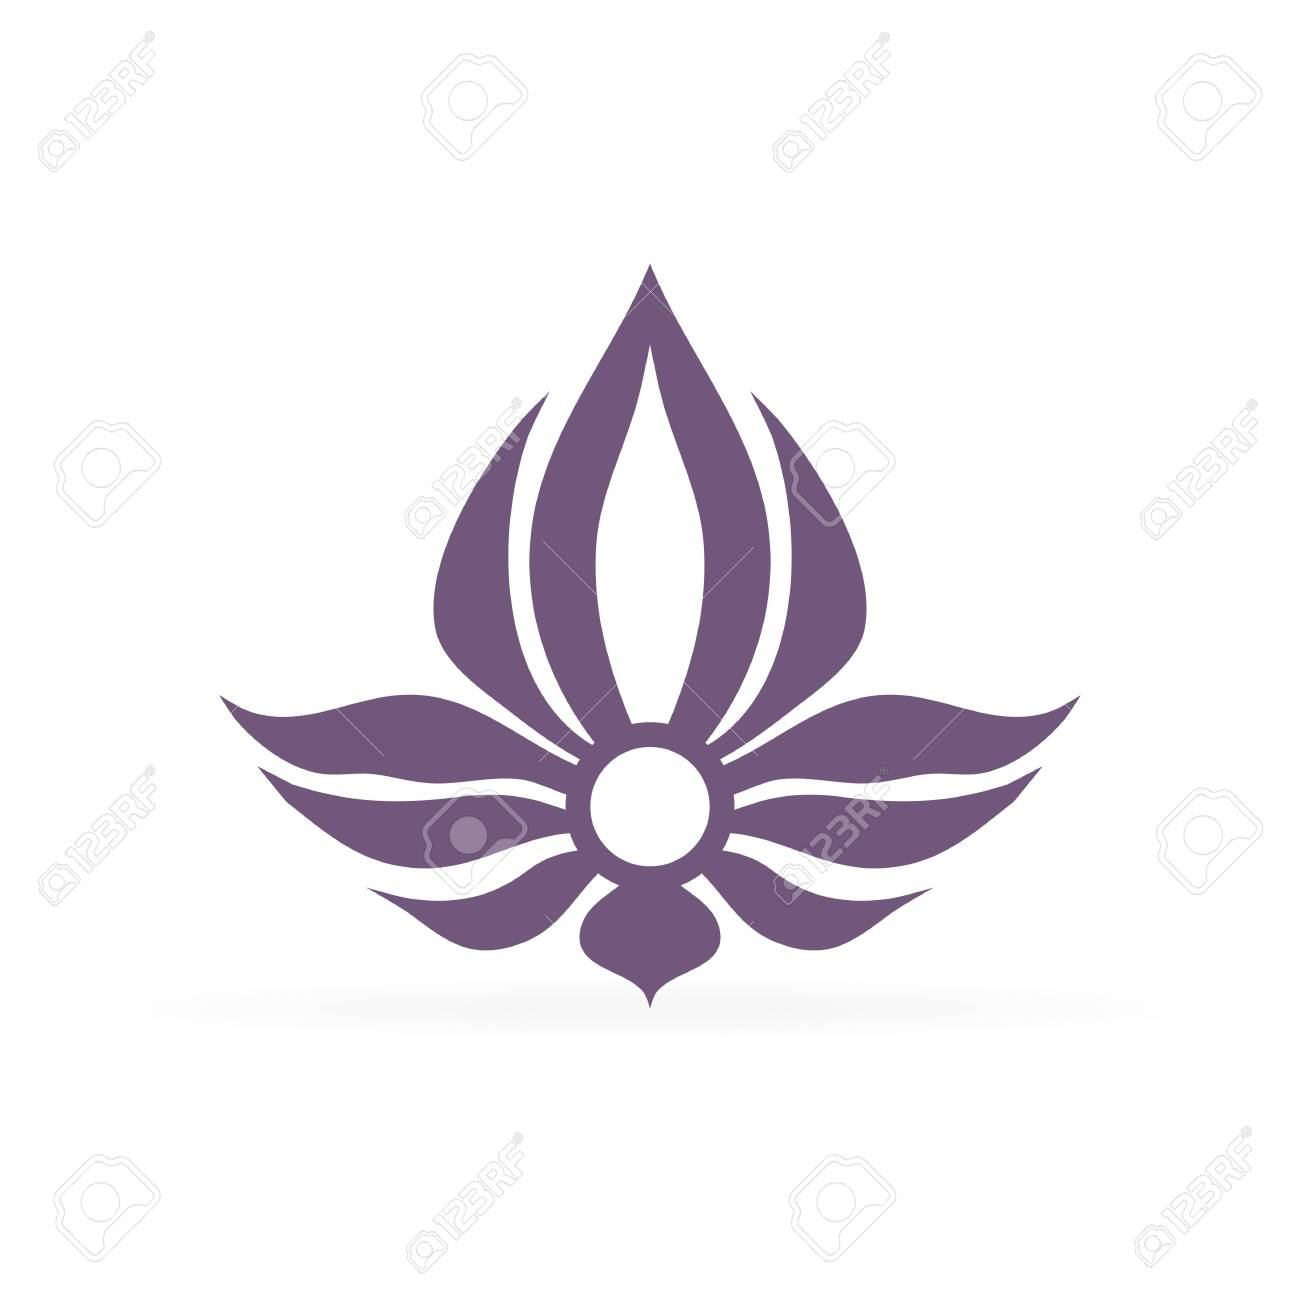 Abstract Violet Lotus Flower Yoga Symbol Or Element For Spa Royalty Free Cliparts Vectors And Stock Illustration Image 131653382